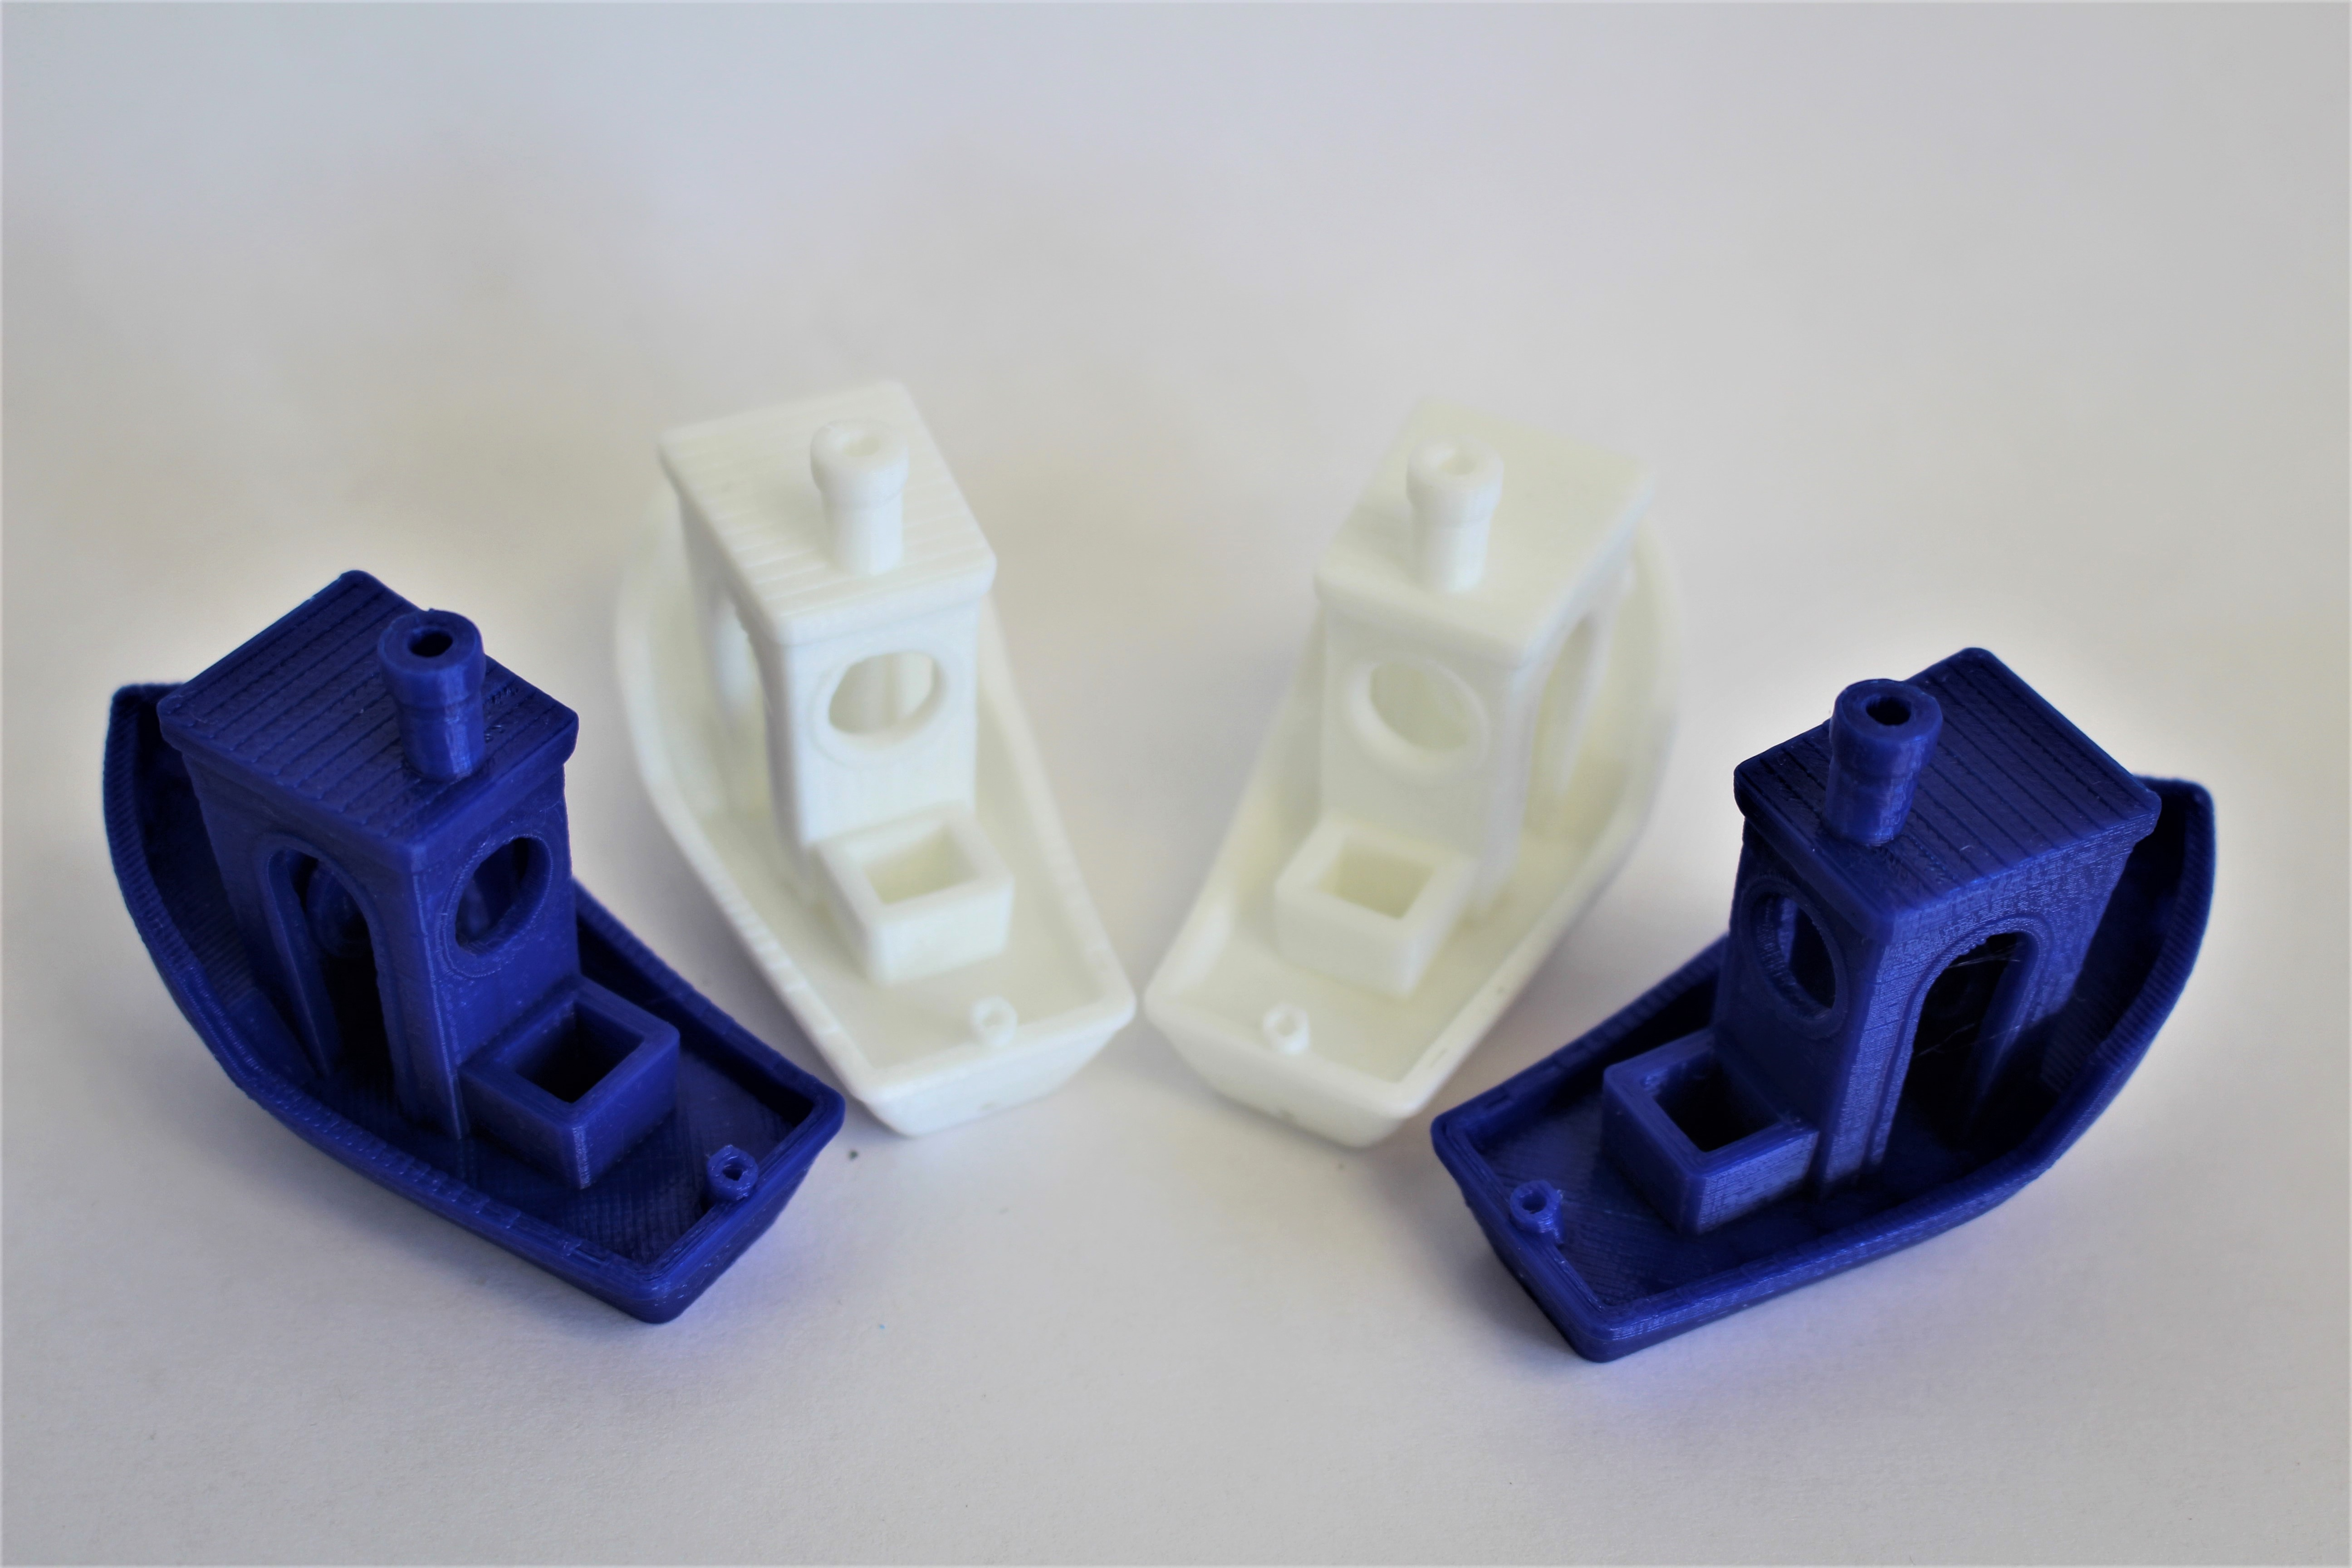 The IDEX benchy fleet. Photo by 3D Printing Industry.